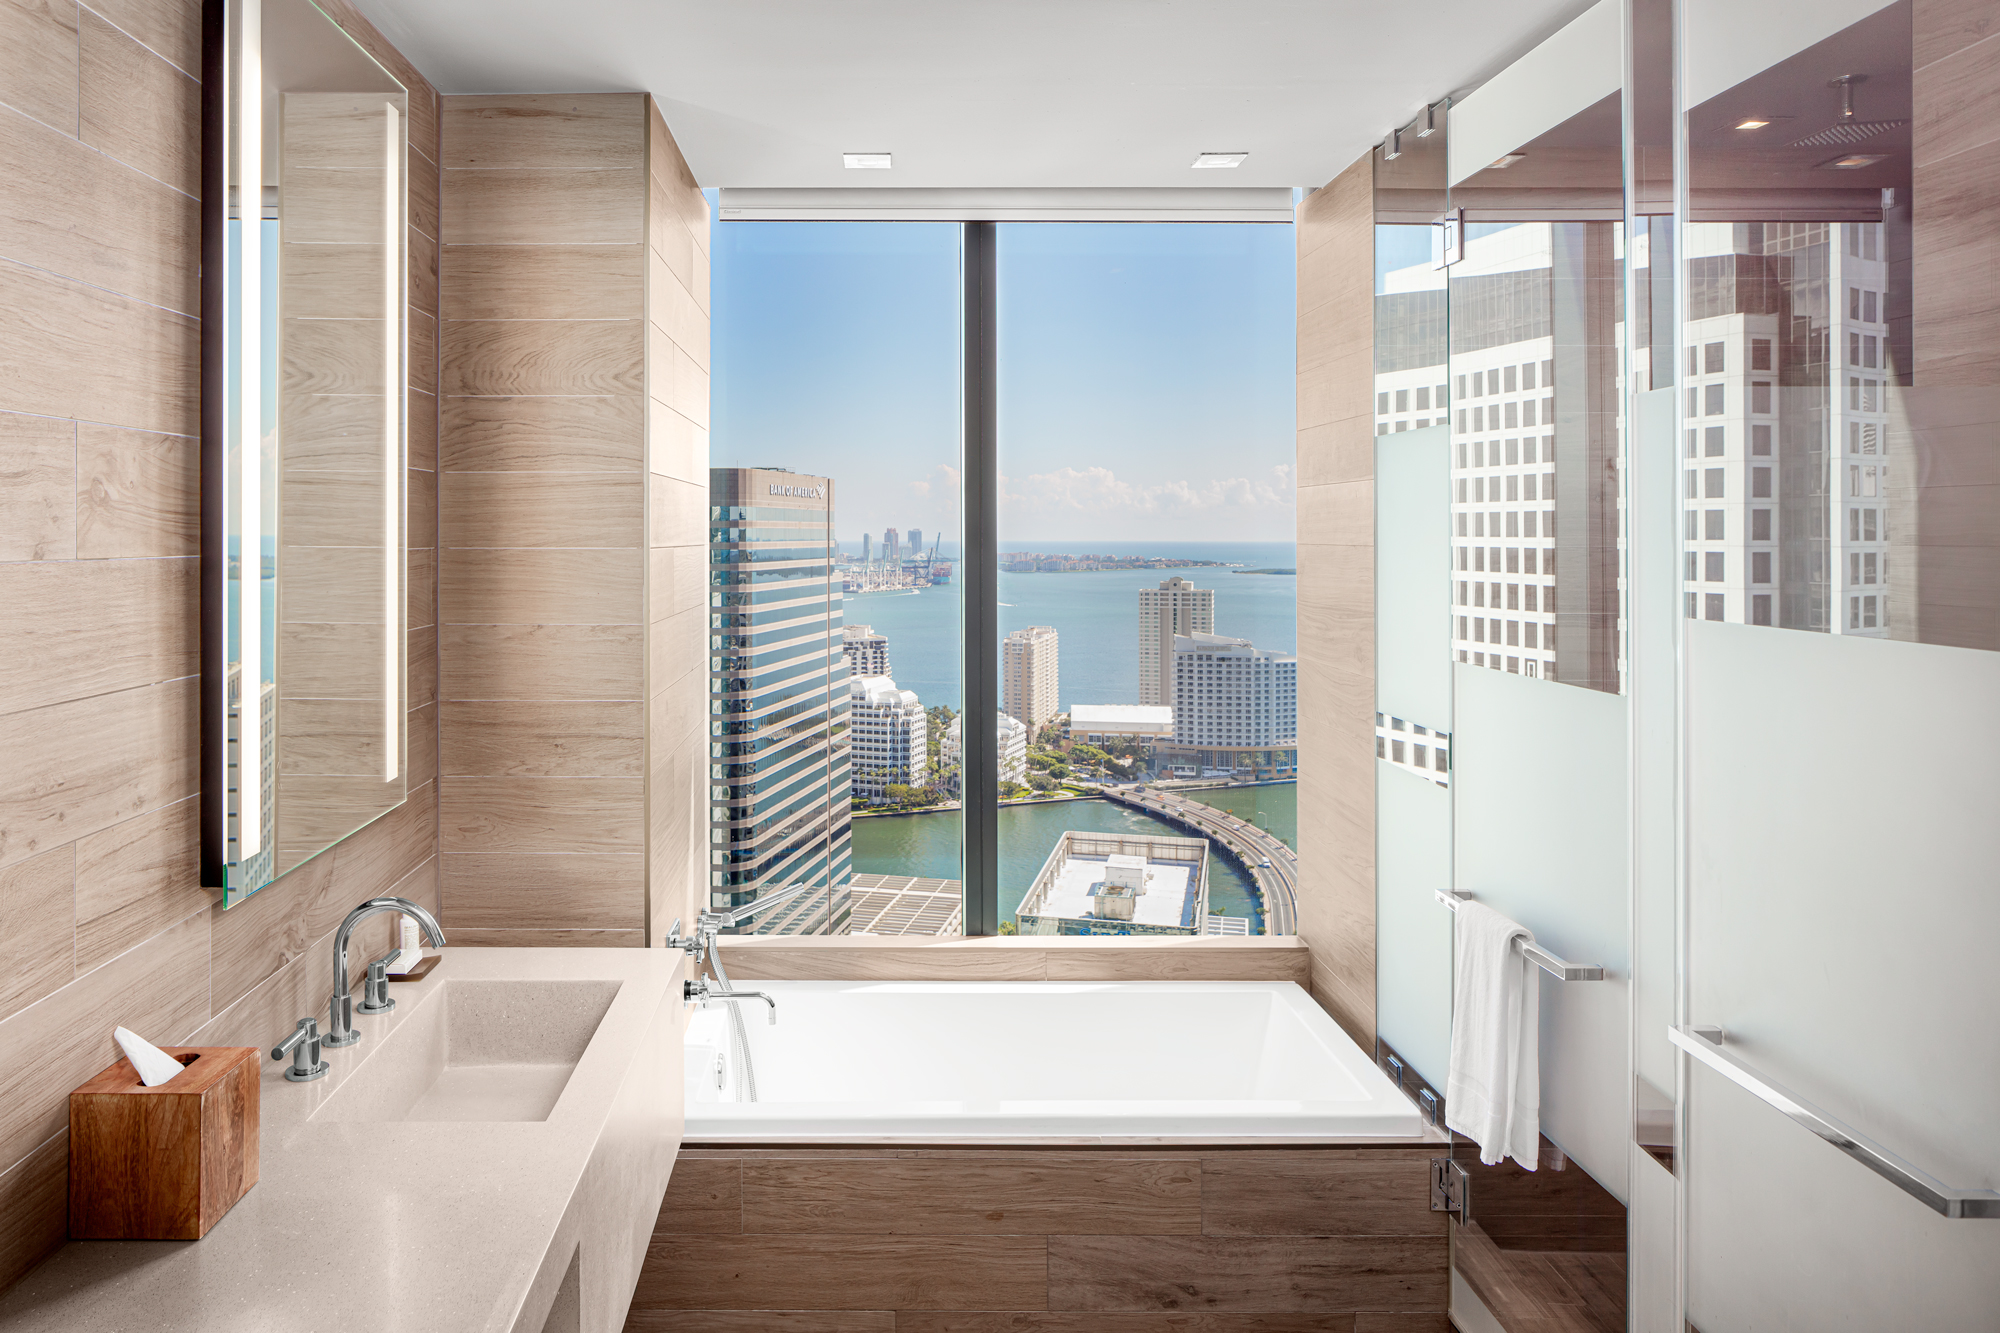 Hotel Bathroom photography by Architecture Photographer Adrian Kilchherr Miami Florida, USA, Europe, Wordwide